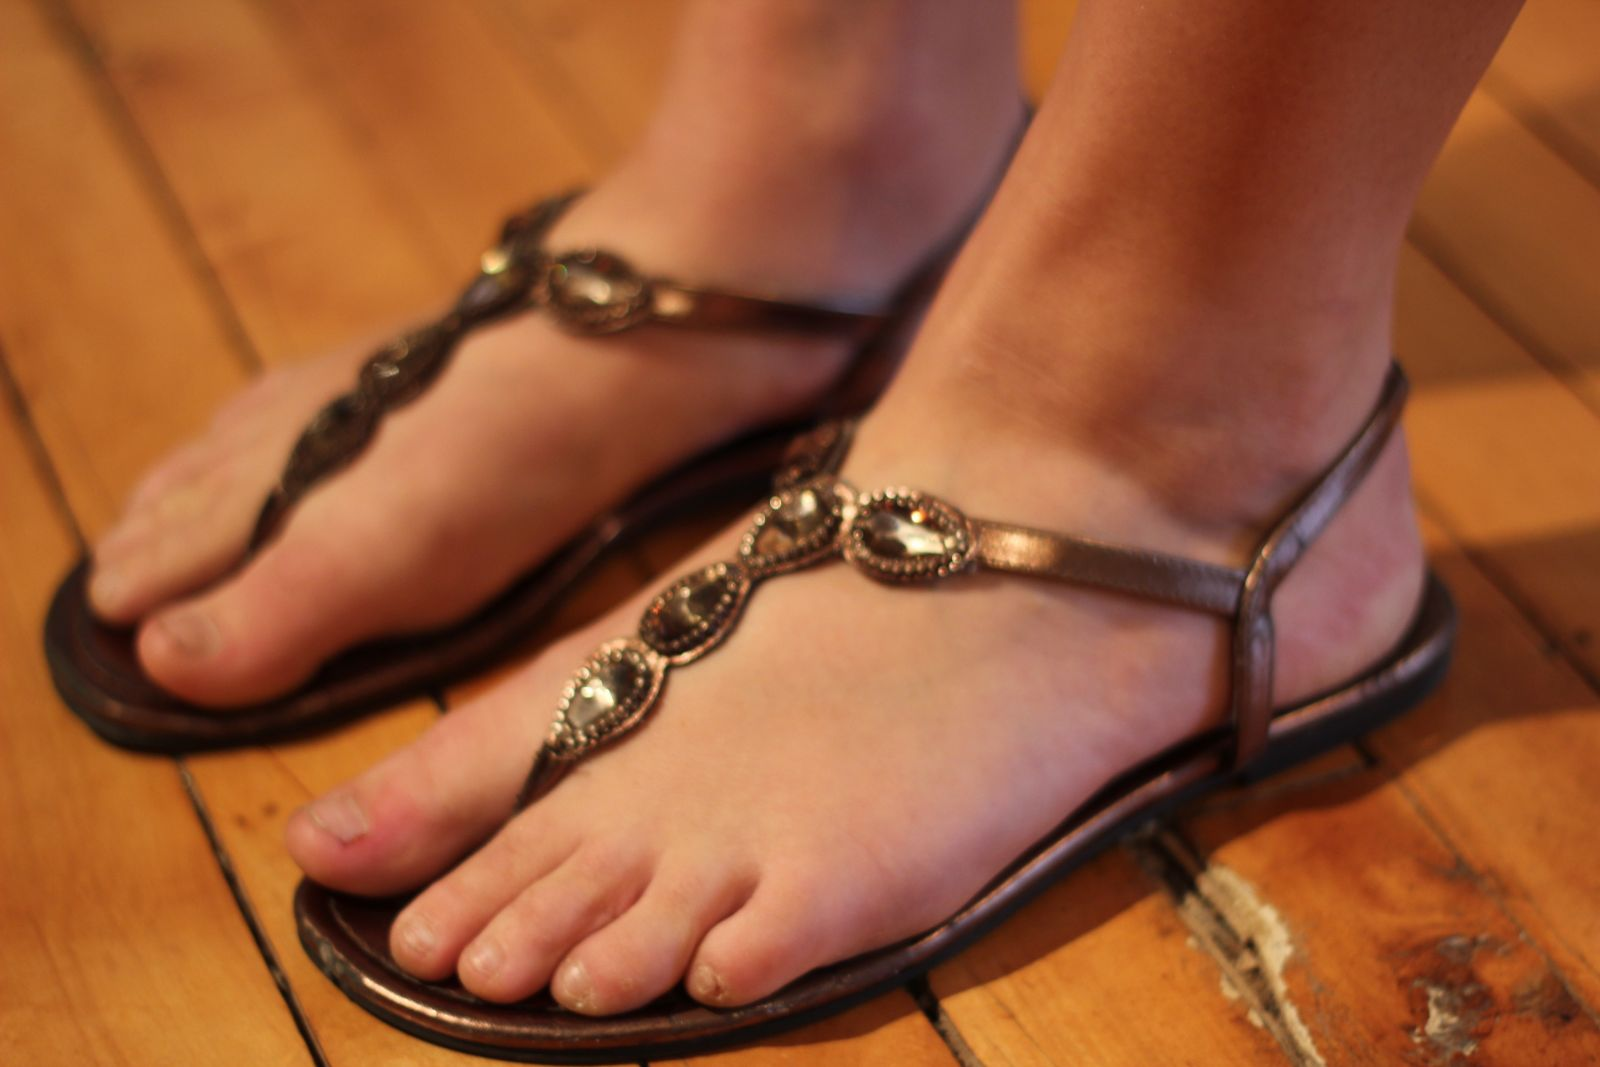 Wearing Sandals with Bunions